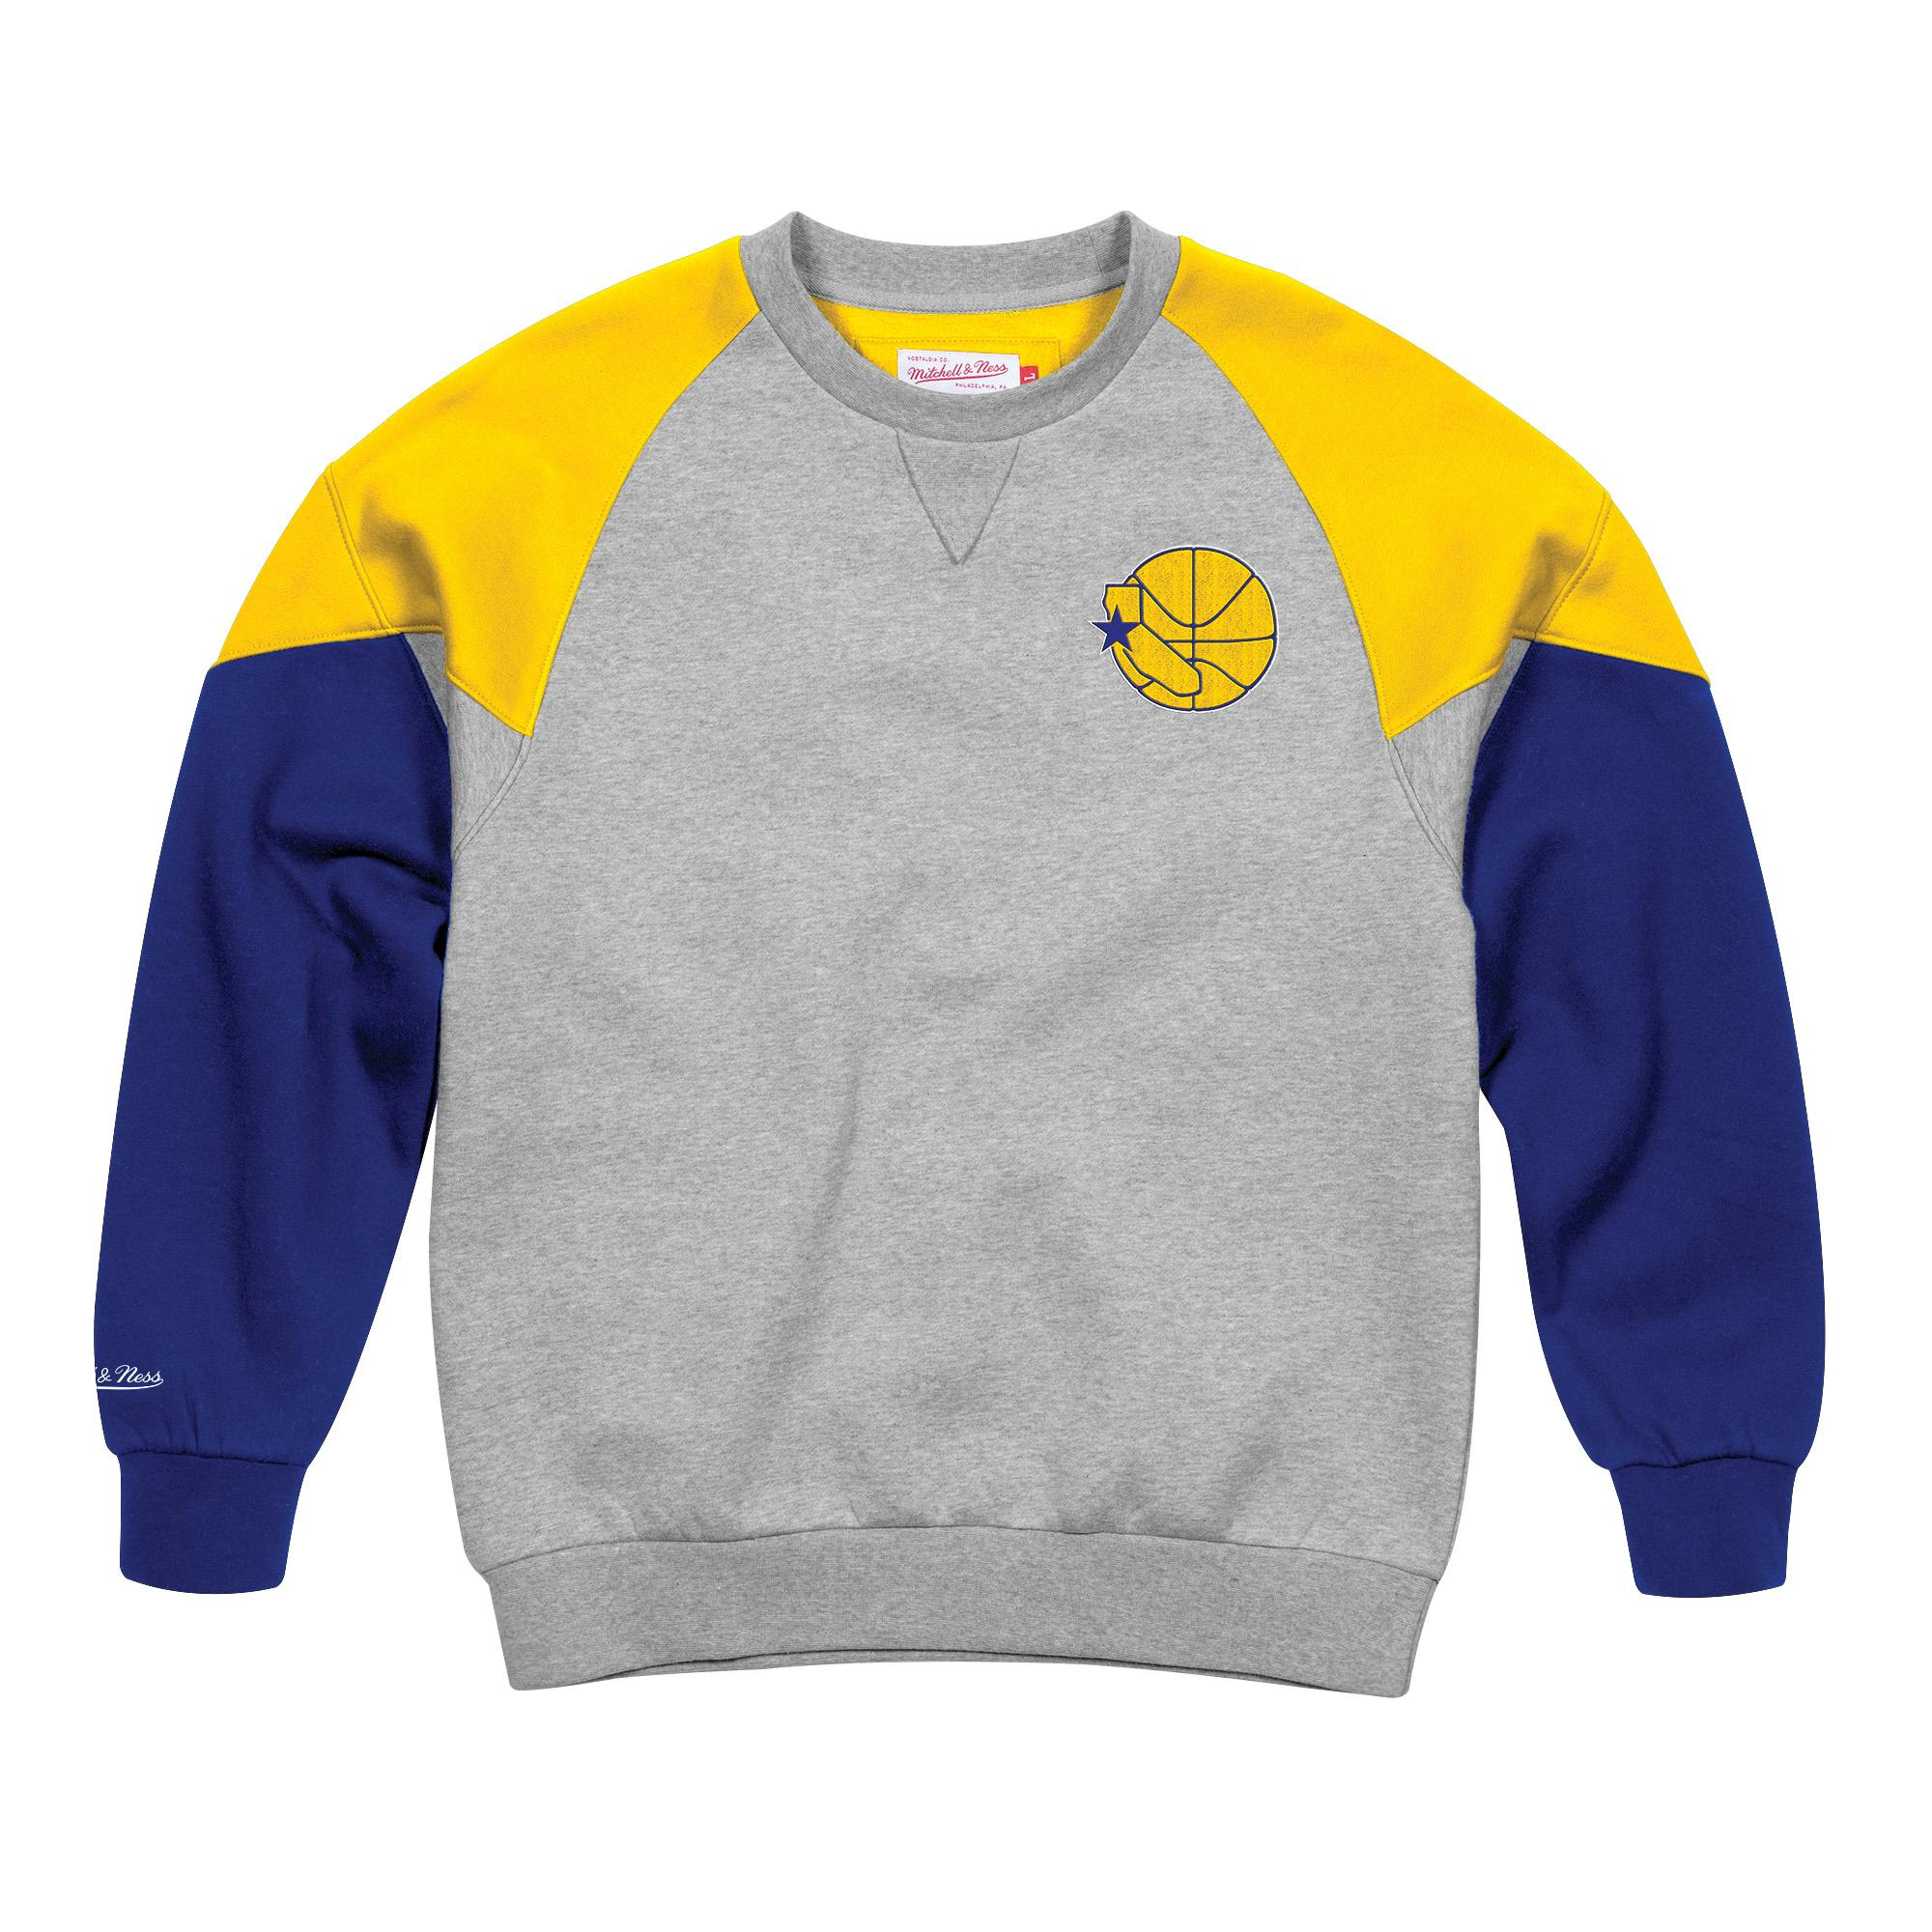 Houston Rockets X Golden State Warriors: Golden State Warriors Trading Block Crew